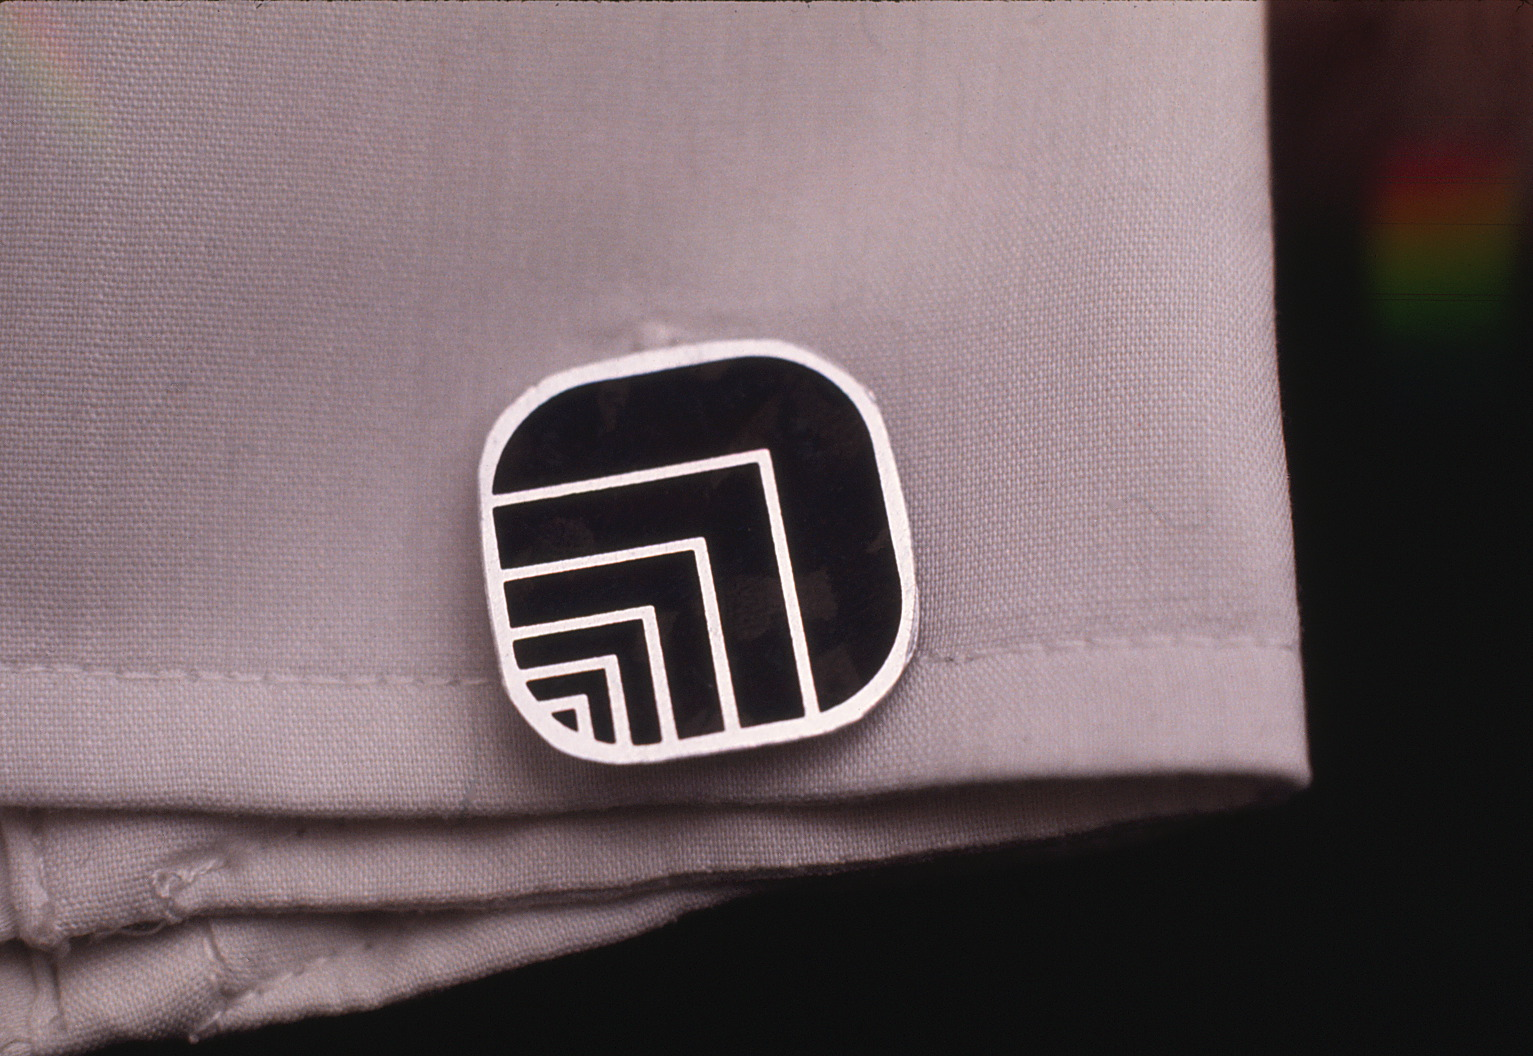 Closeup of cufflink on a sleeve featuring Oxford logo.